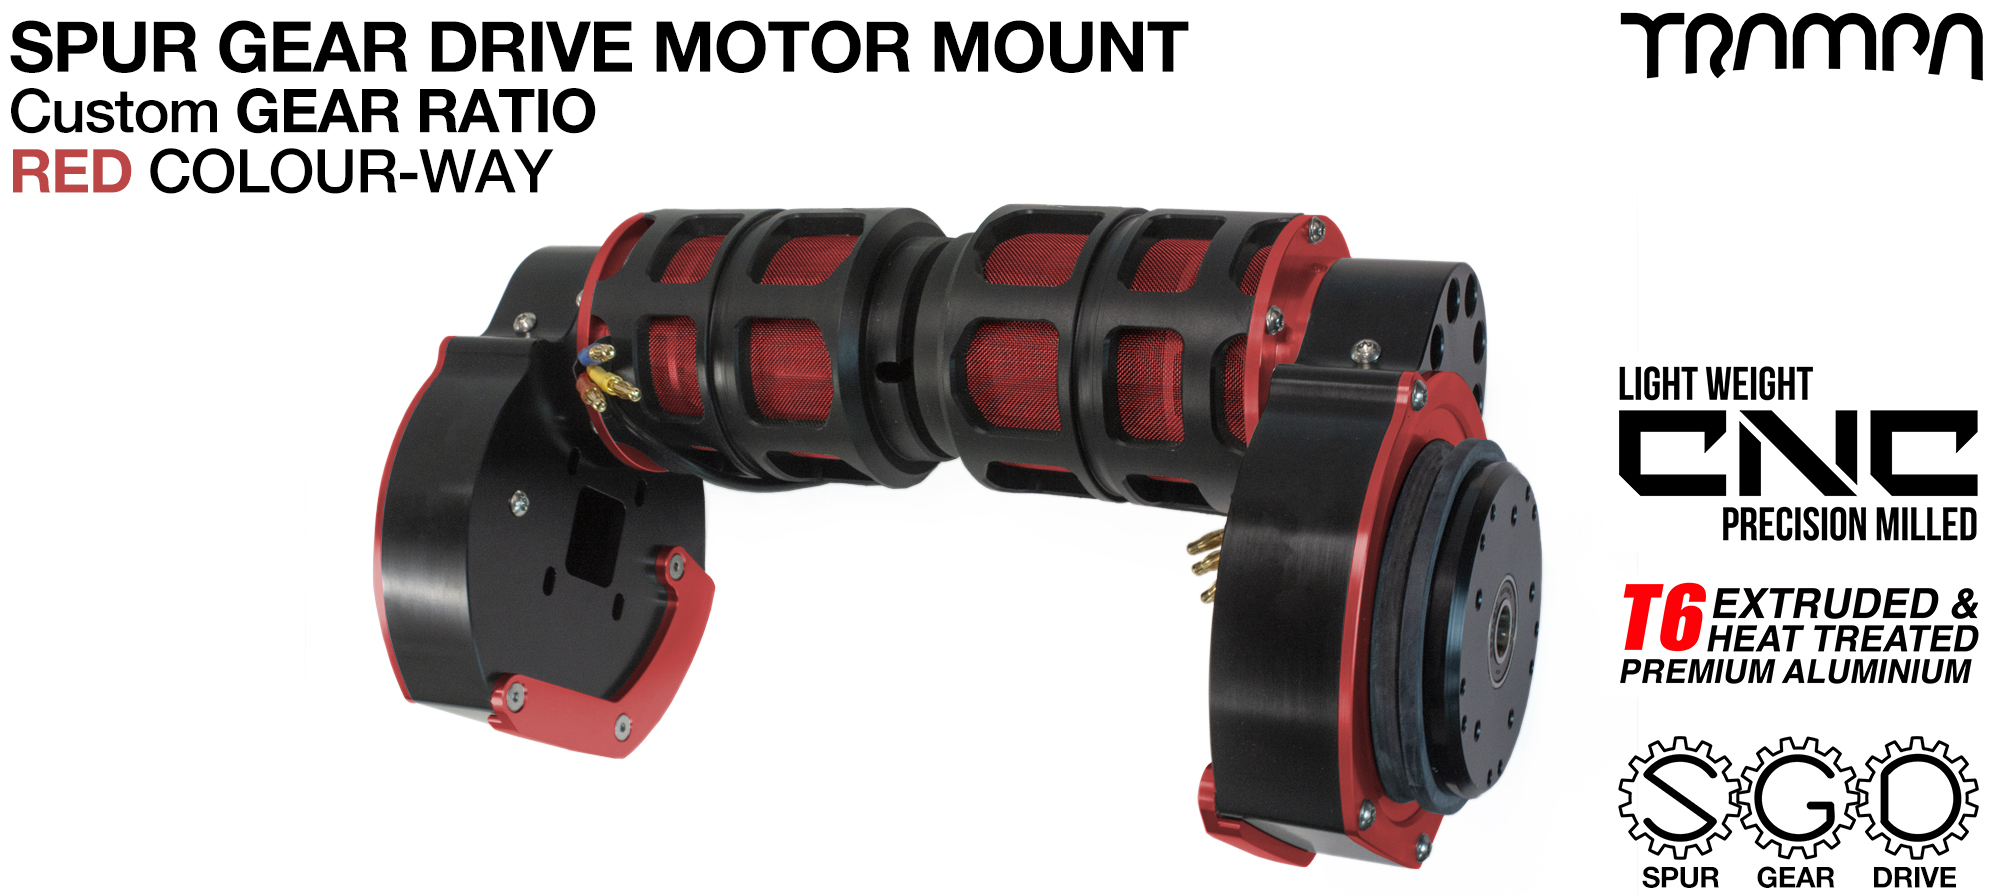 Mountainboard Spur Gear Drive TWIN Motor Mount - RED